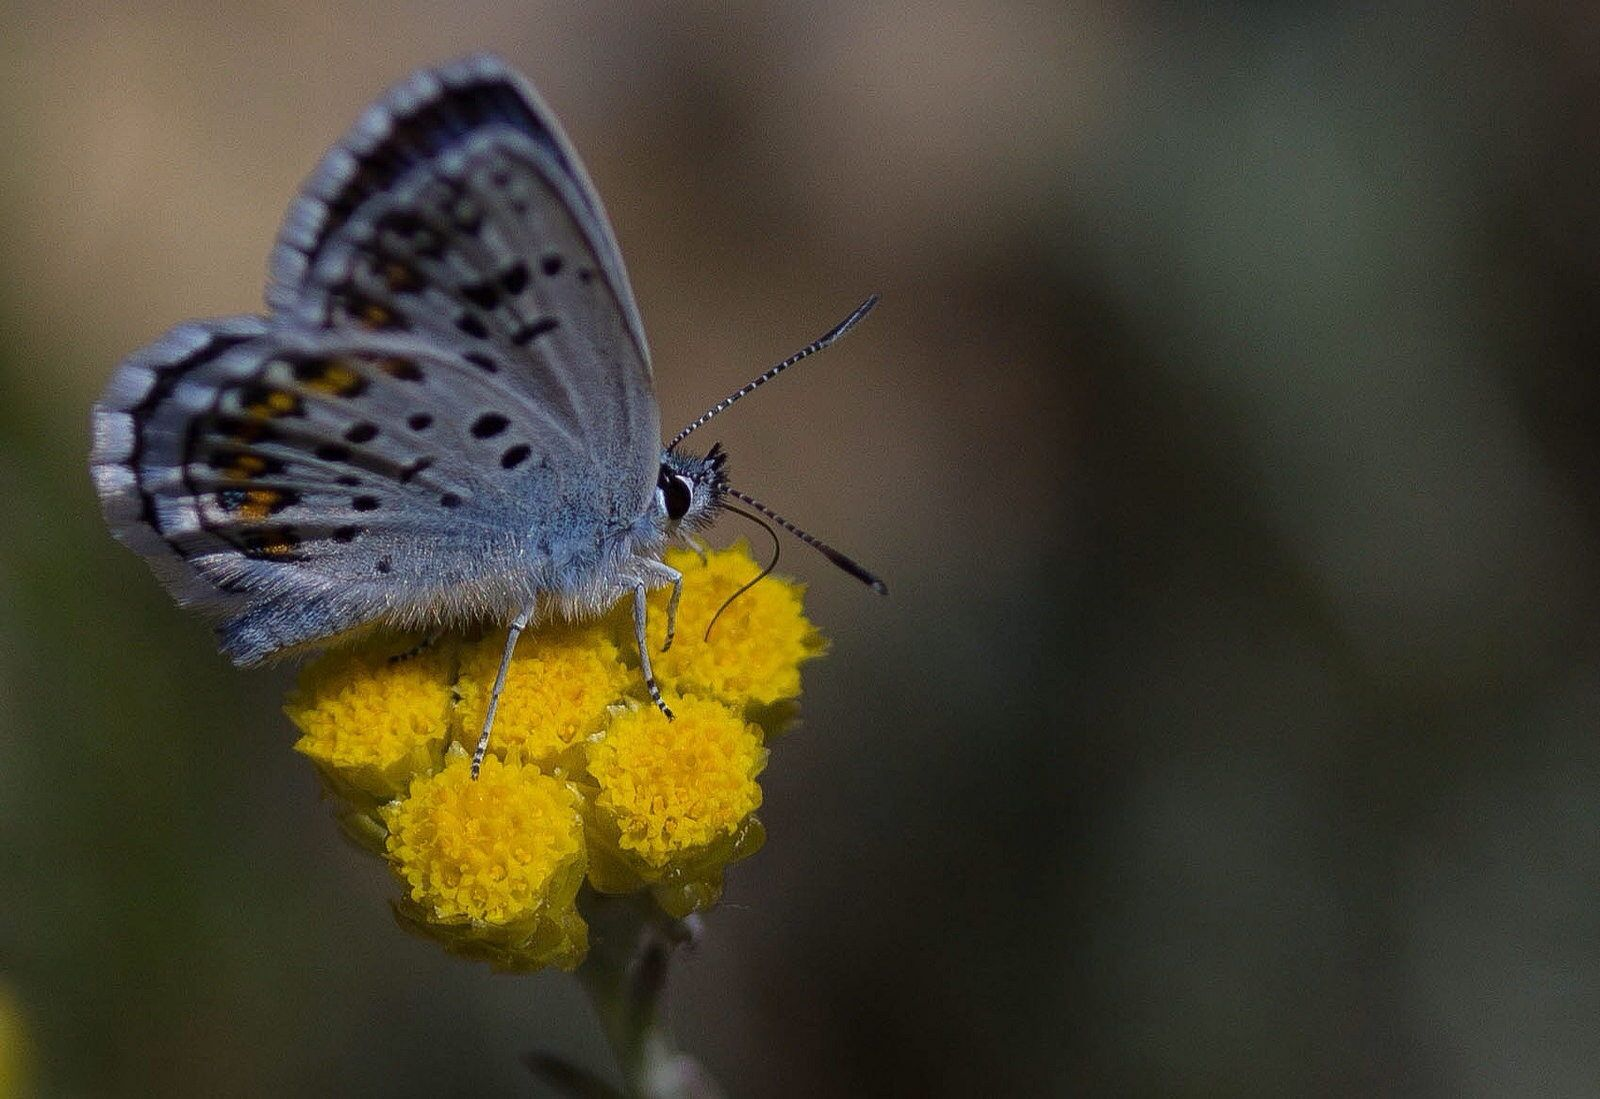 Butterfly by Robert Padovani on 500px